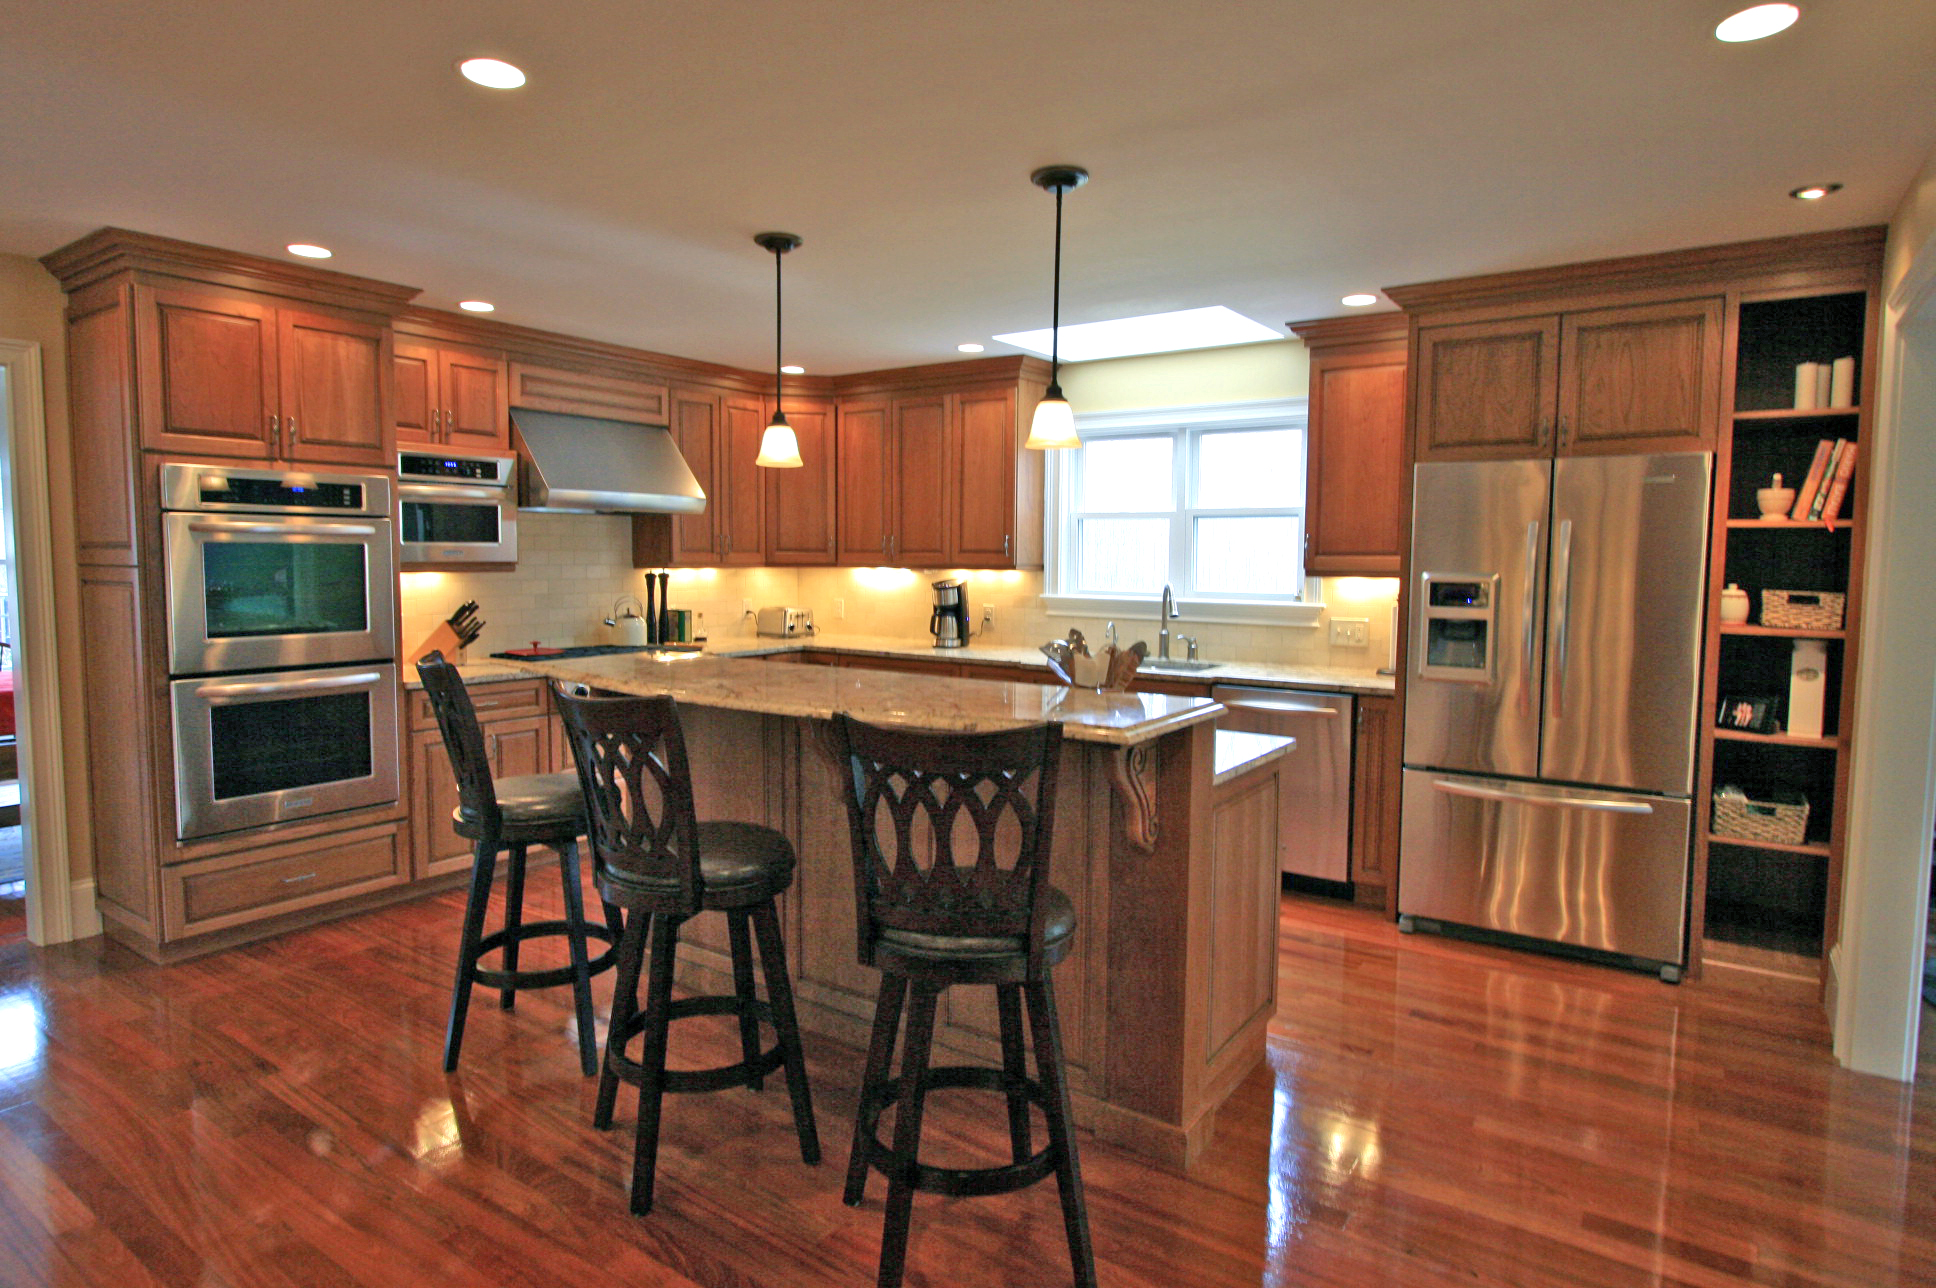 Check out the pics of new kitchens halliday construction for New kitchen remodel ideas